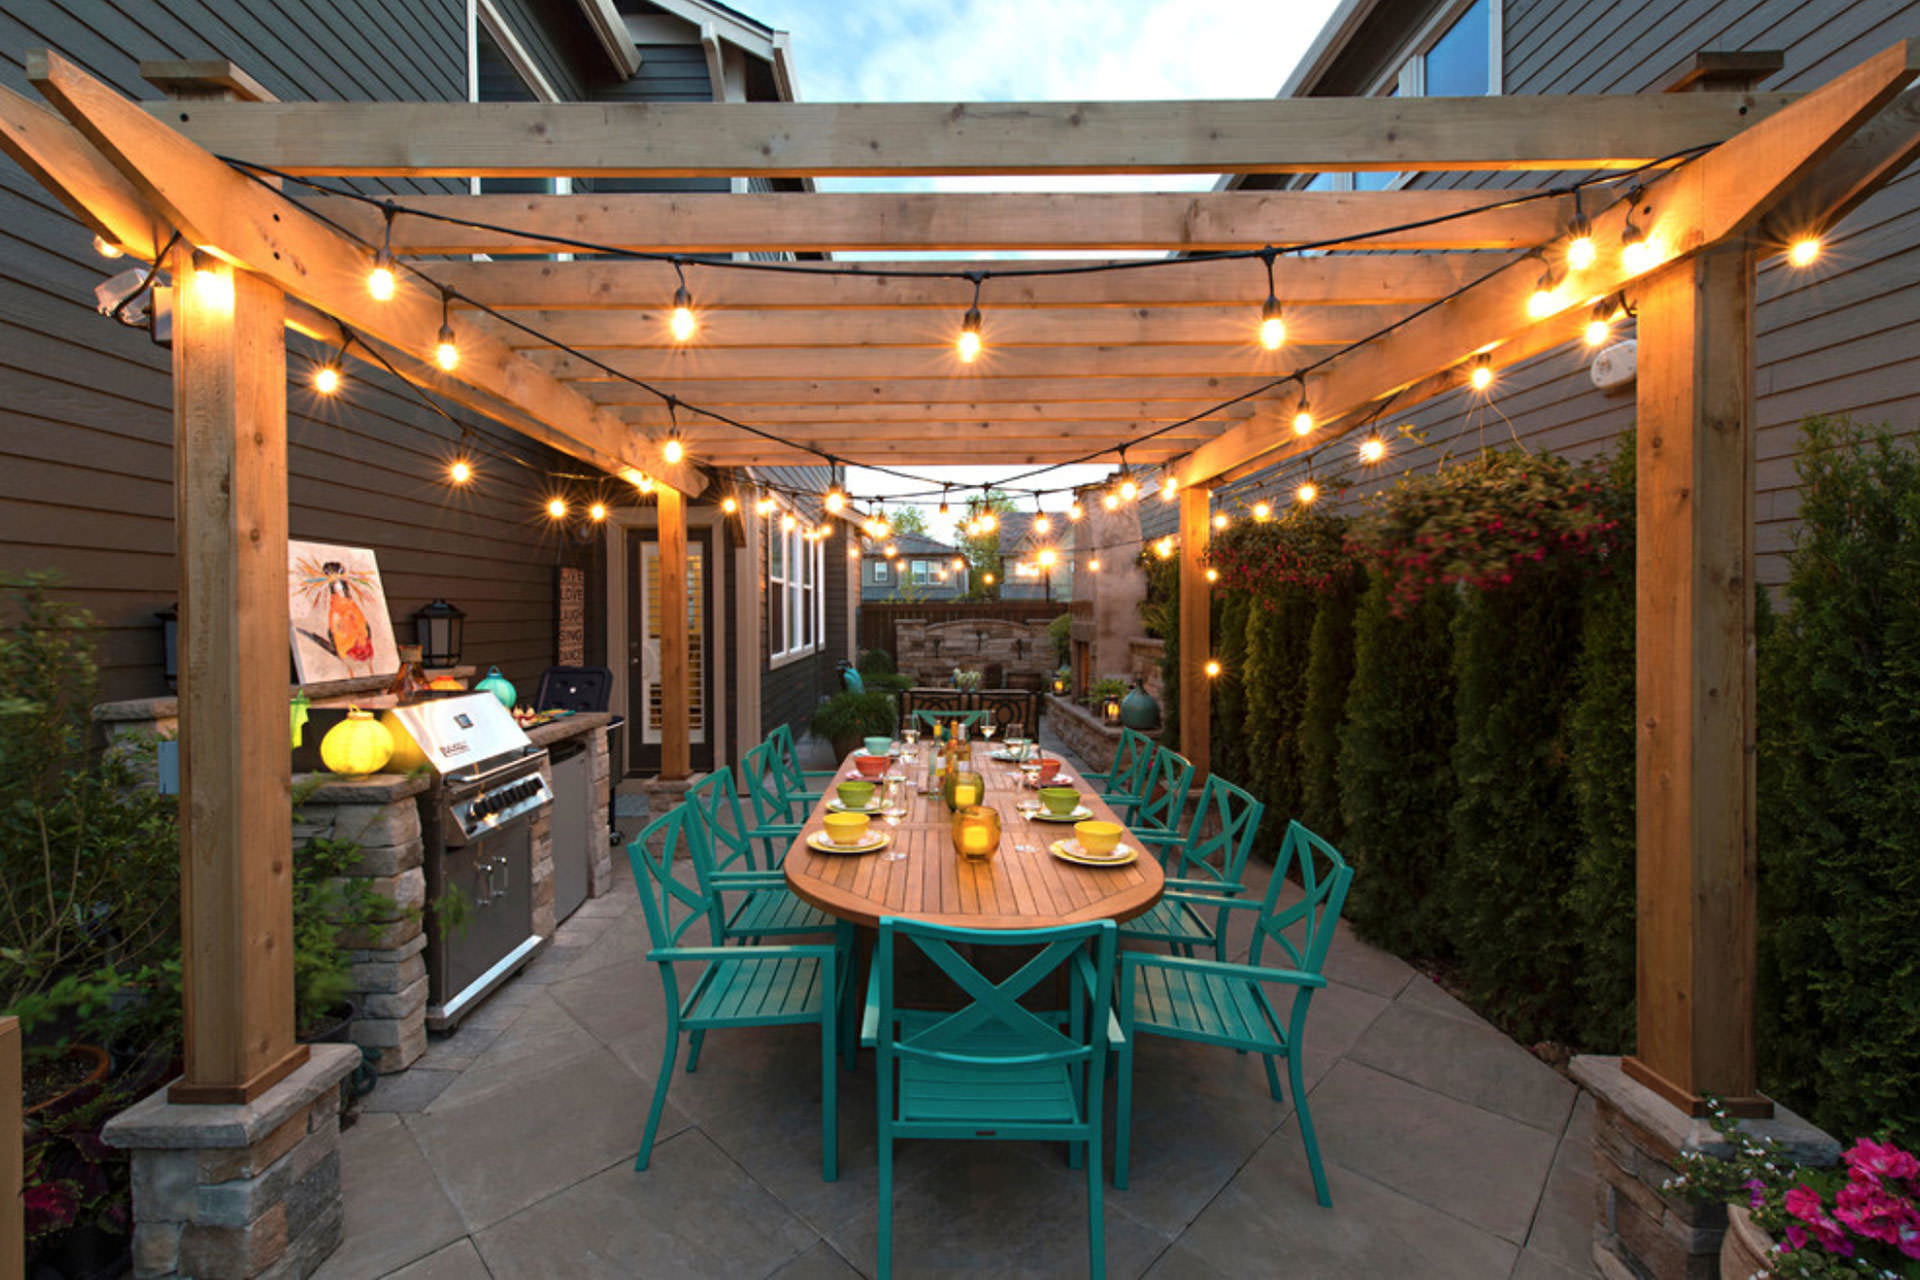 Five pergola lighting ideas to illuminate your outdoor space string lights pergola lighting ideas workwithnaturefo